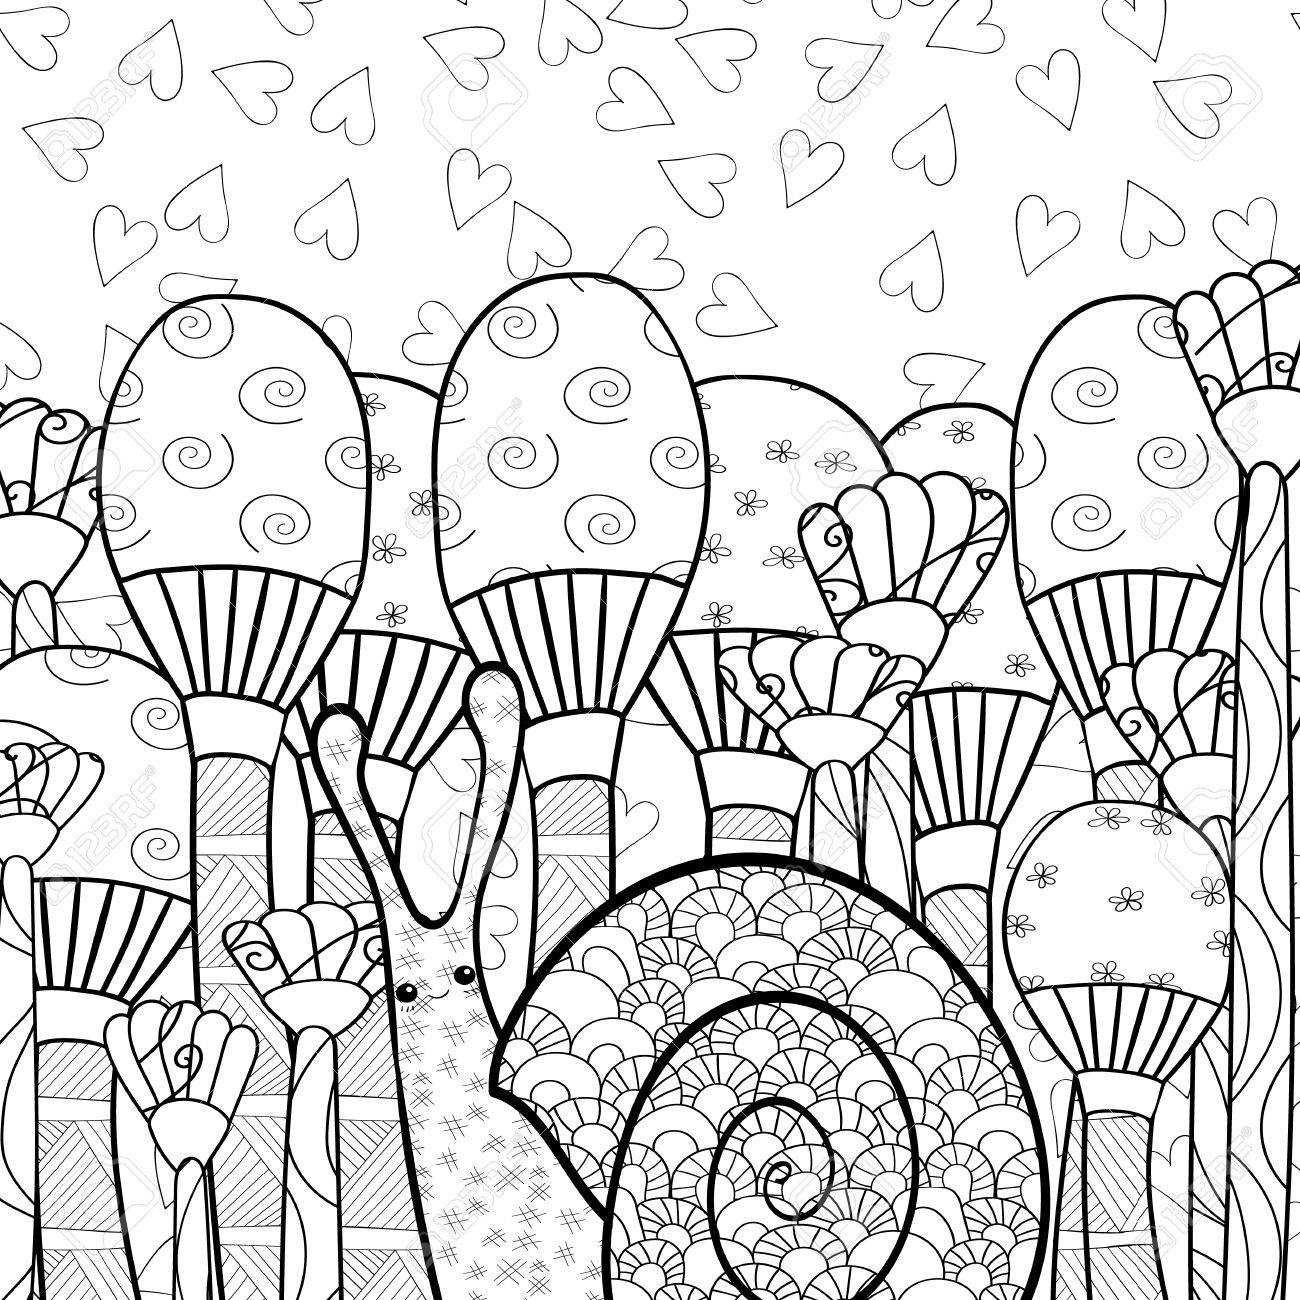 Whimsical designs coloring book - Cute Snail In Whimsical Mushroom Forest Adult Coloring Book Page Line Art Vector Illustration